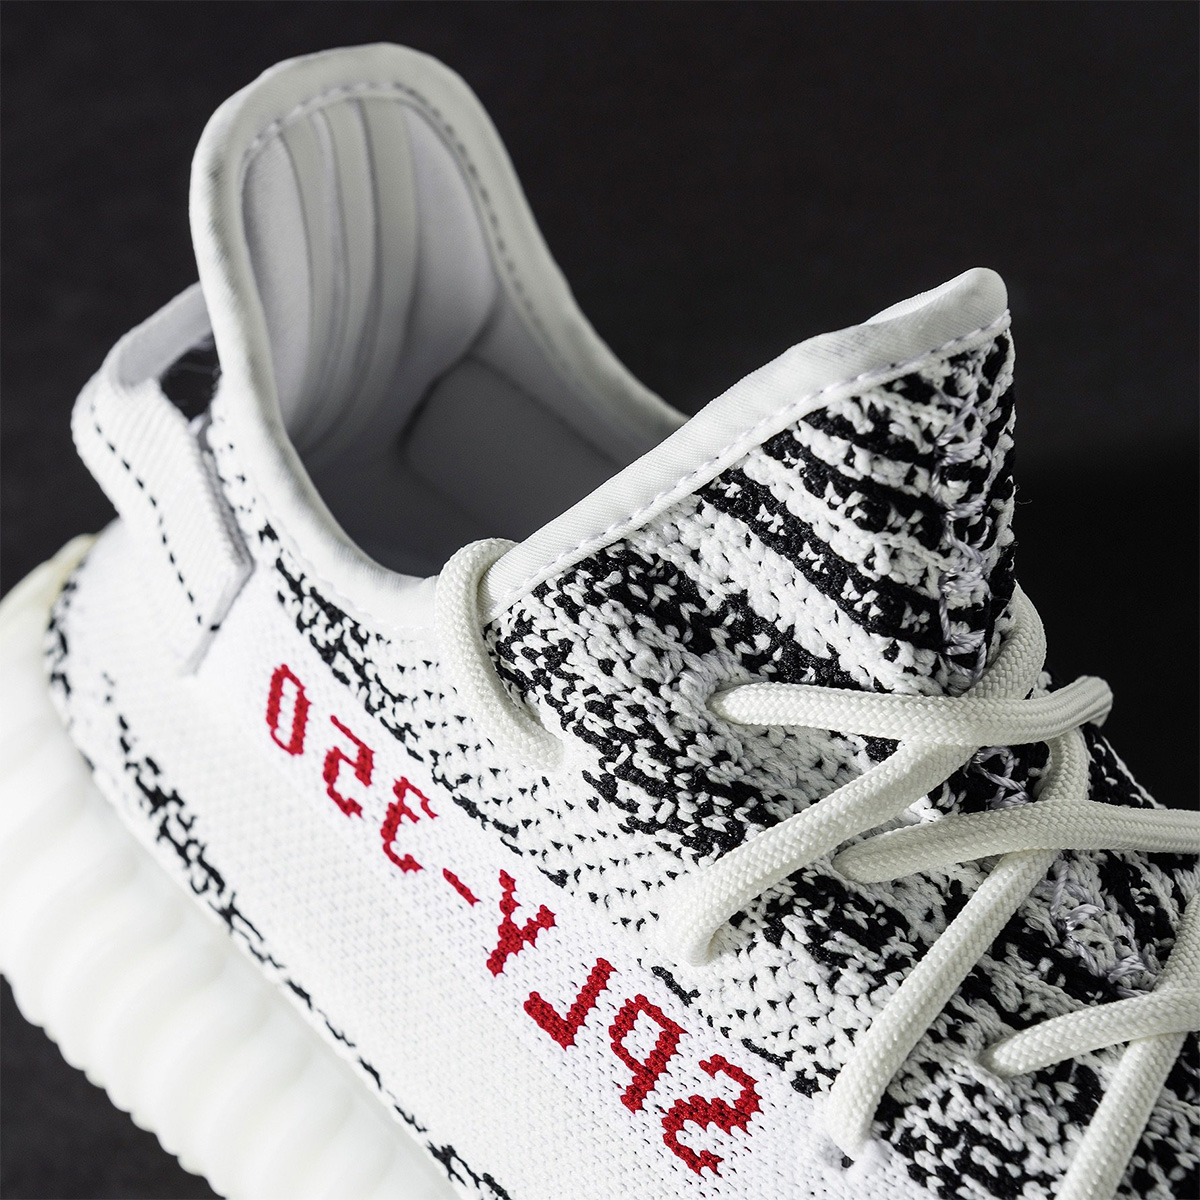 Adidas Yeezy 350 Boost V 2 'Black / White' Online Early Links